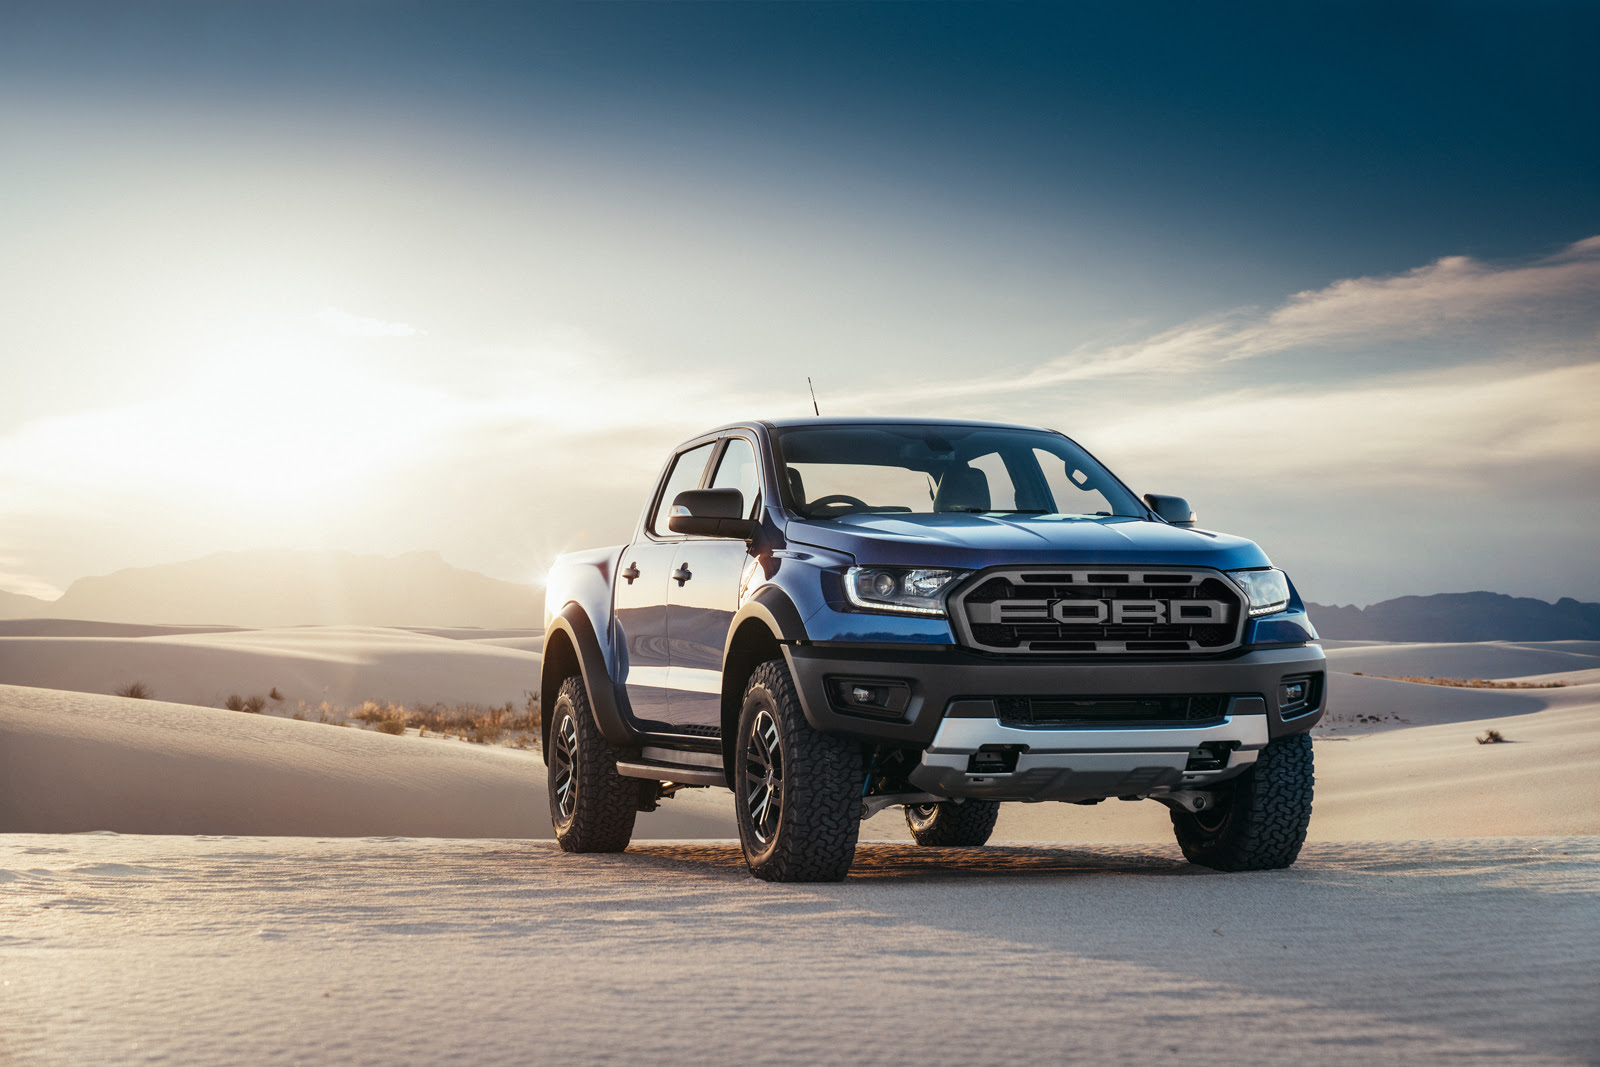 2019 Ford Ranger Raptor Arrives With 210 HP Diesel, Off ...